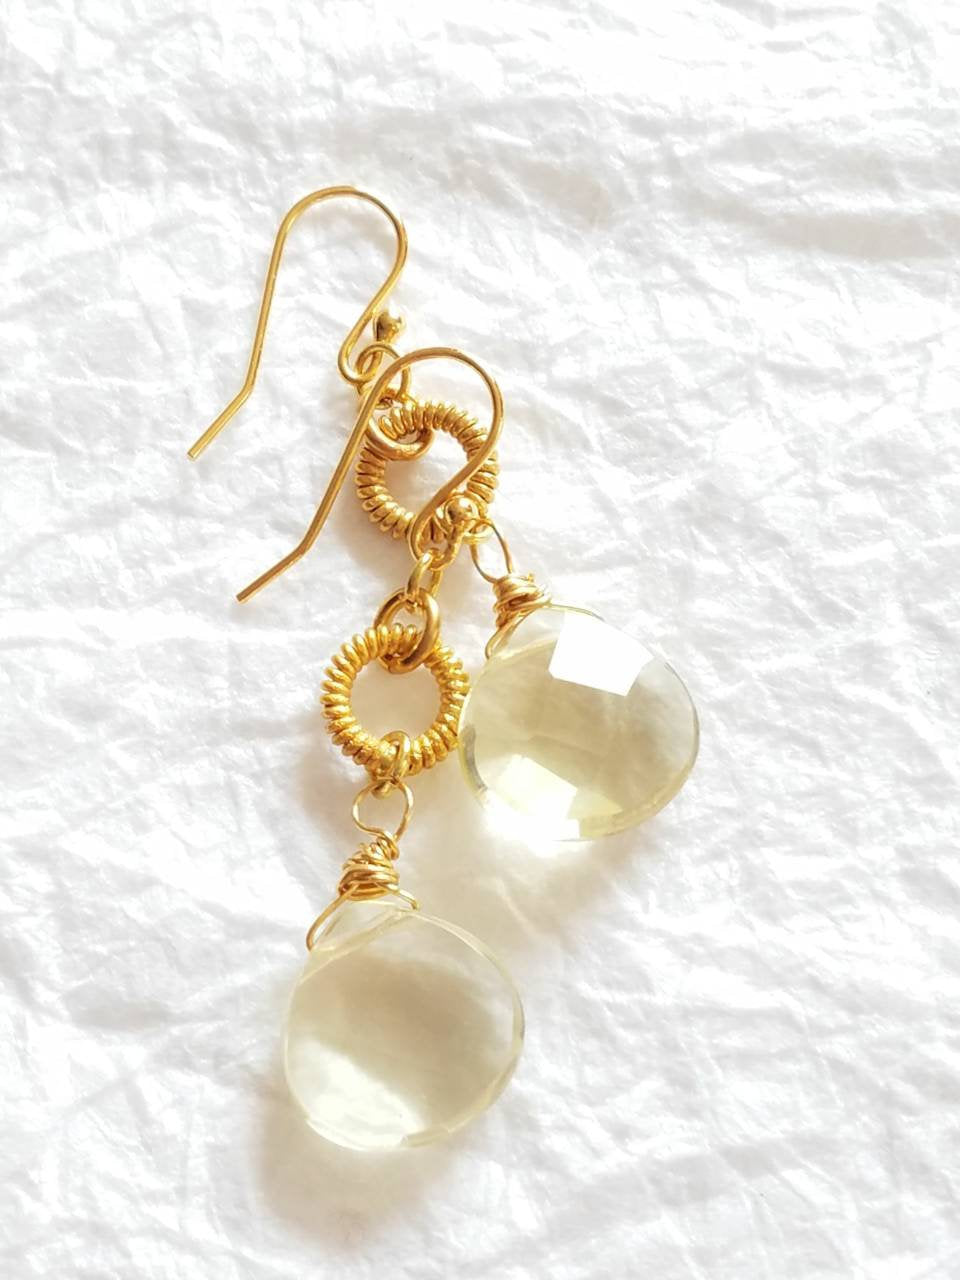 Lemon Quartz Briolette Coiled Circle Vermeil and 14kt Gold Plate Drop Earrings, The Jessamine Earrings